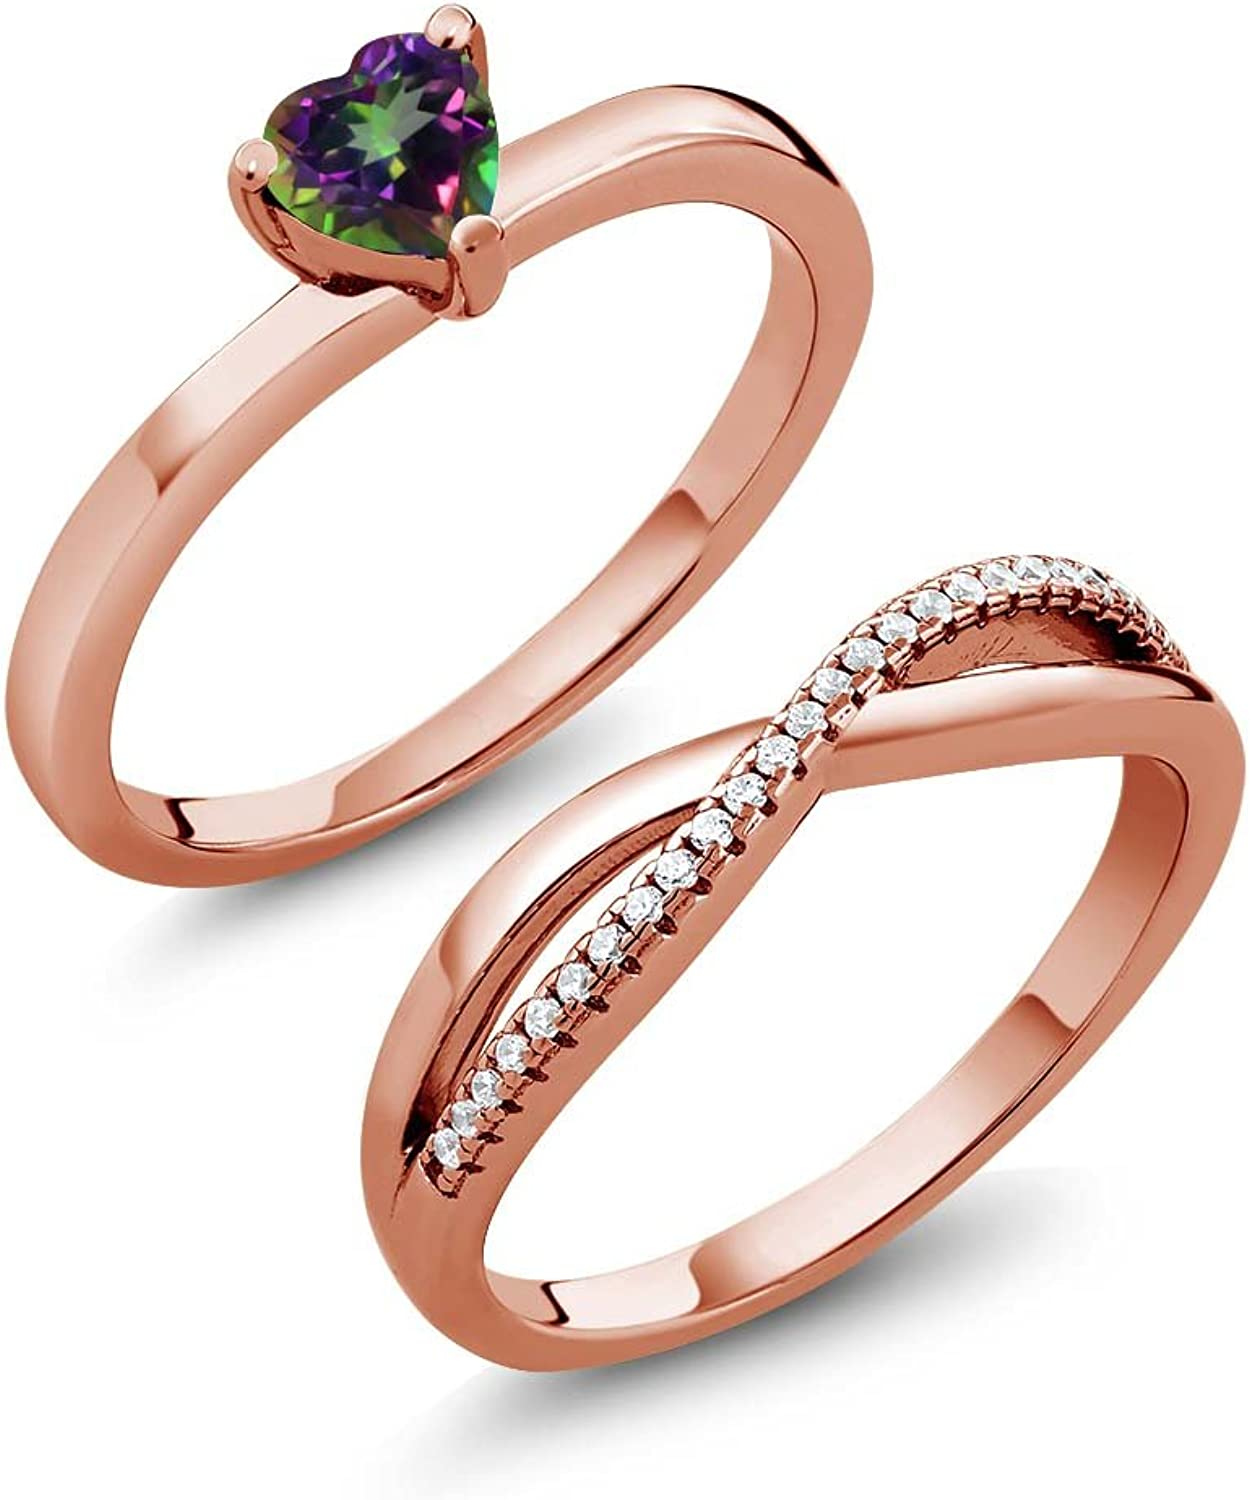 0.90 Ct Green Mystic Topaz 18K pink gold Plated Silver Engagement Wedding Ring Set